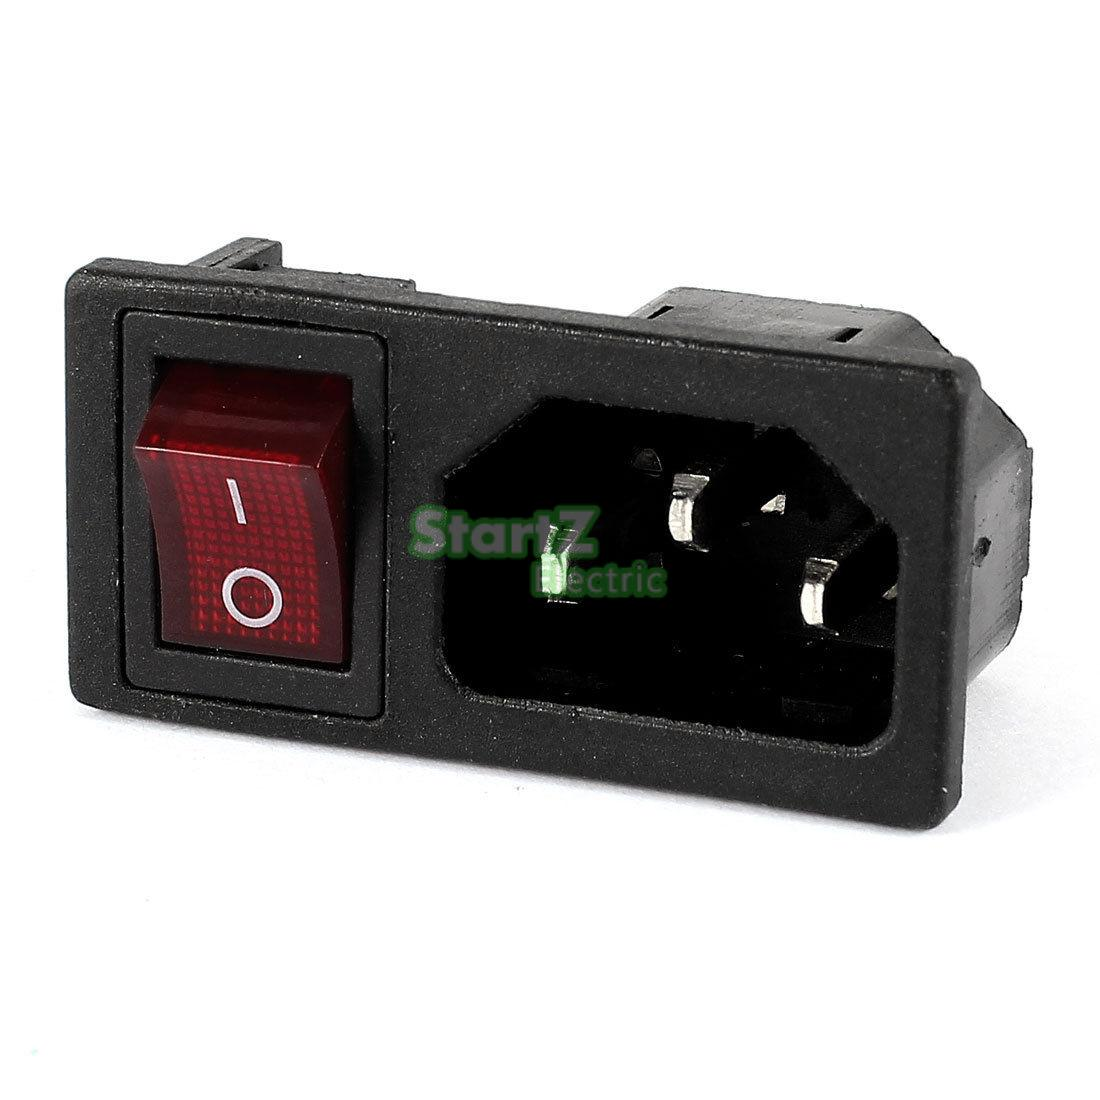 Panel IEC320 C14 Inlet Power Socket On/Off SPST Red Rocker Switch AC 250V 10A yuxi new two way socket iec320 c14 inlet c13 outlet electrical socket industrial plug power rocker socket connector 10a 250v